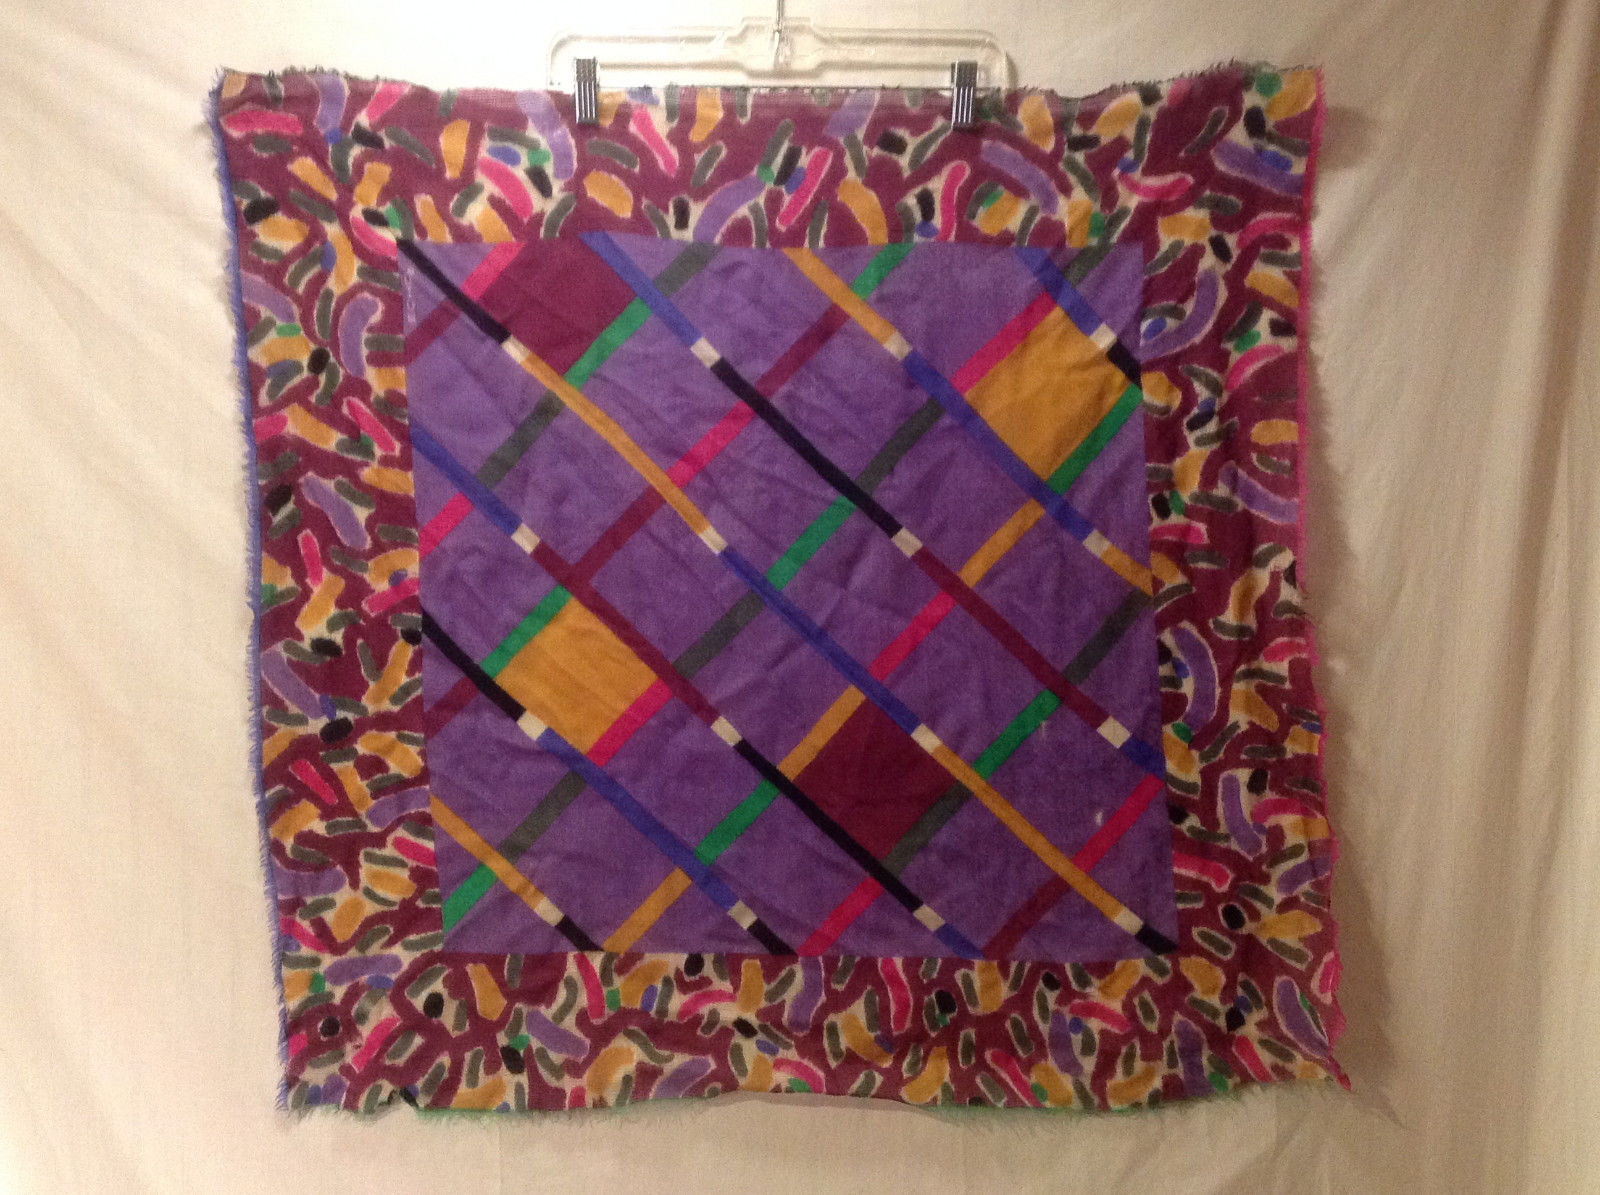 Women's Square Scarf Shawl Abstract Modernist Diamond Print Purple Pink Blue etc